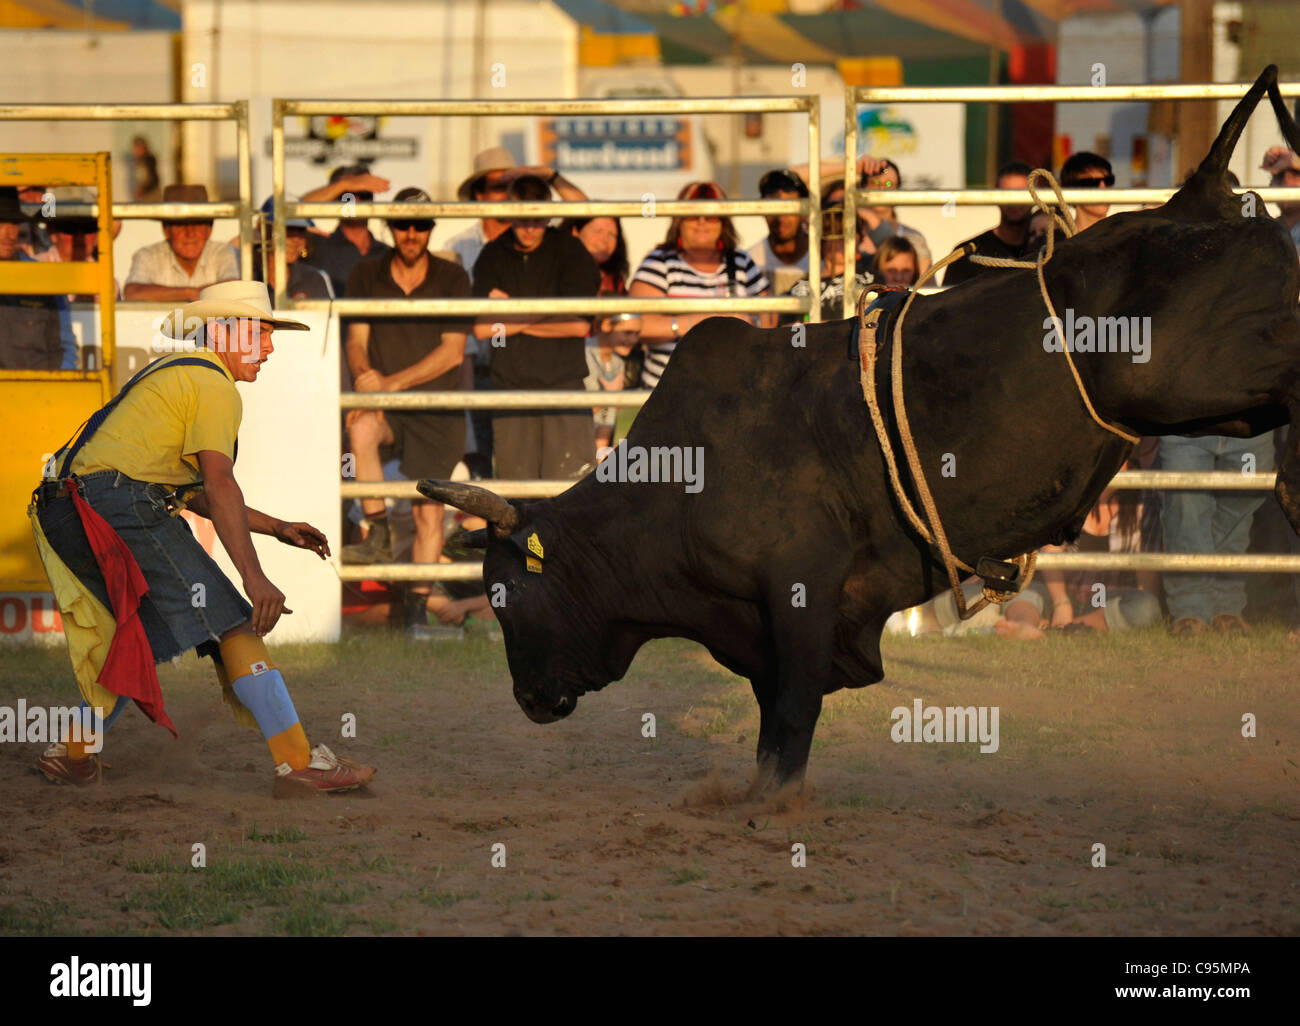 A rodeo clown taunts a rodeo bull that has thrown it's rider. - Stock Image